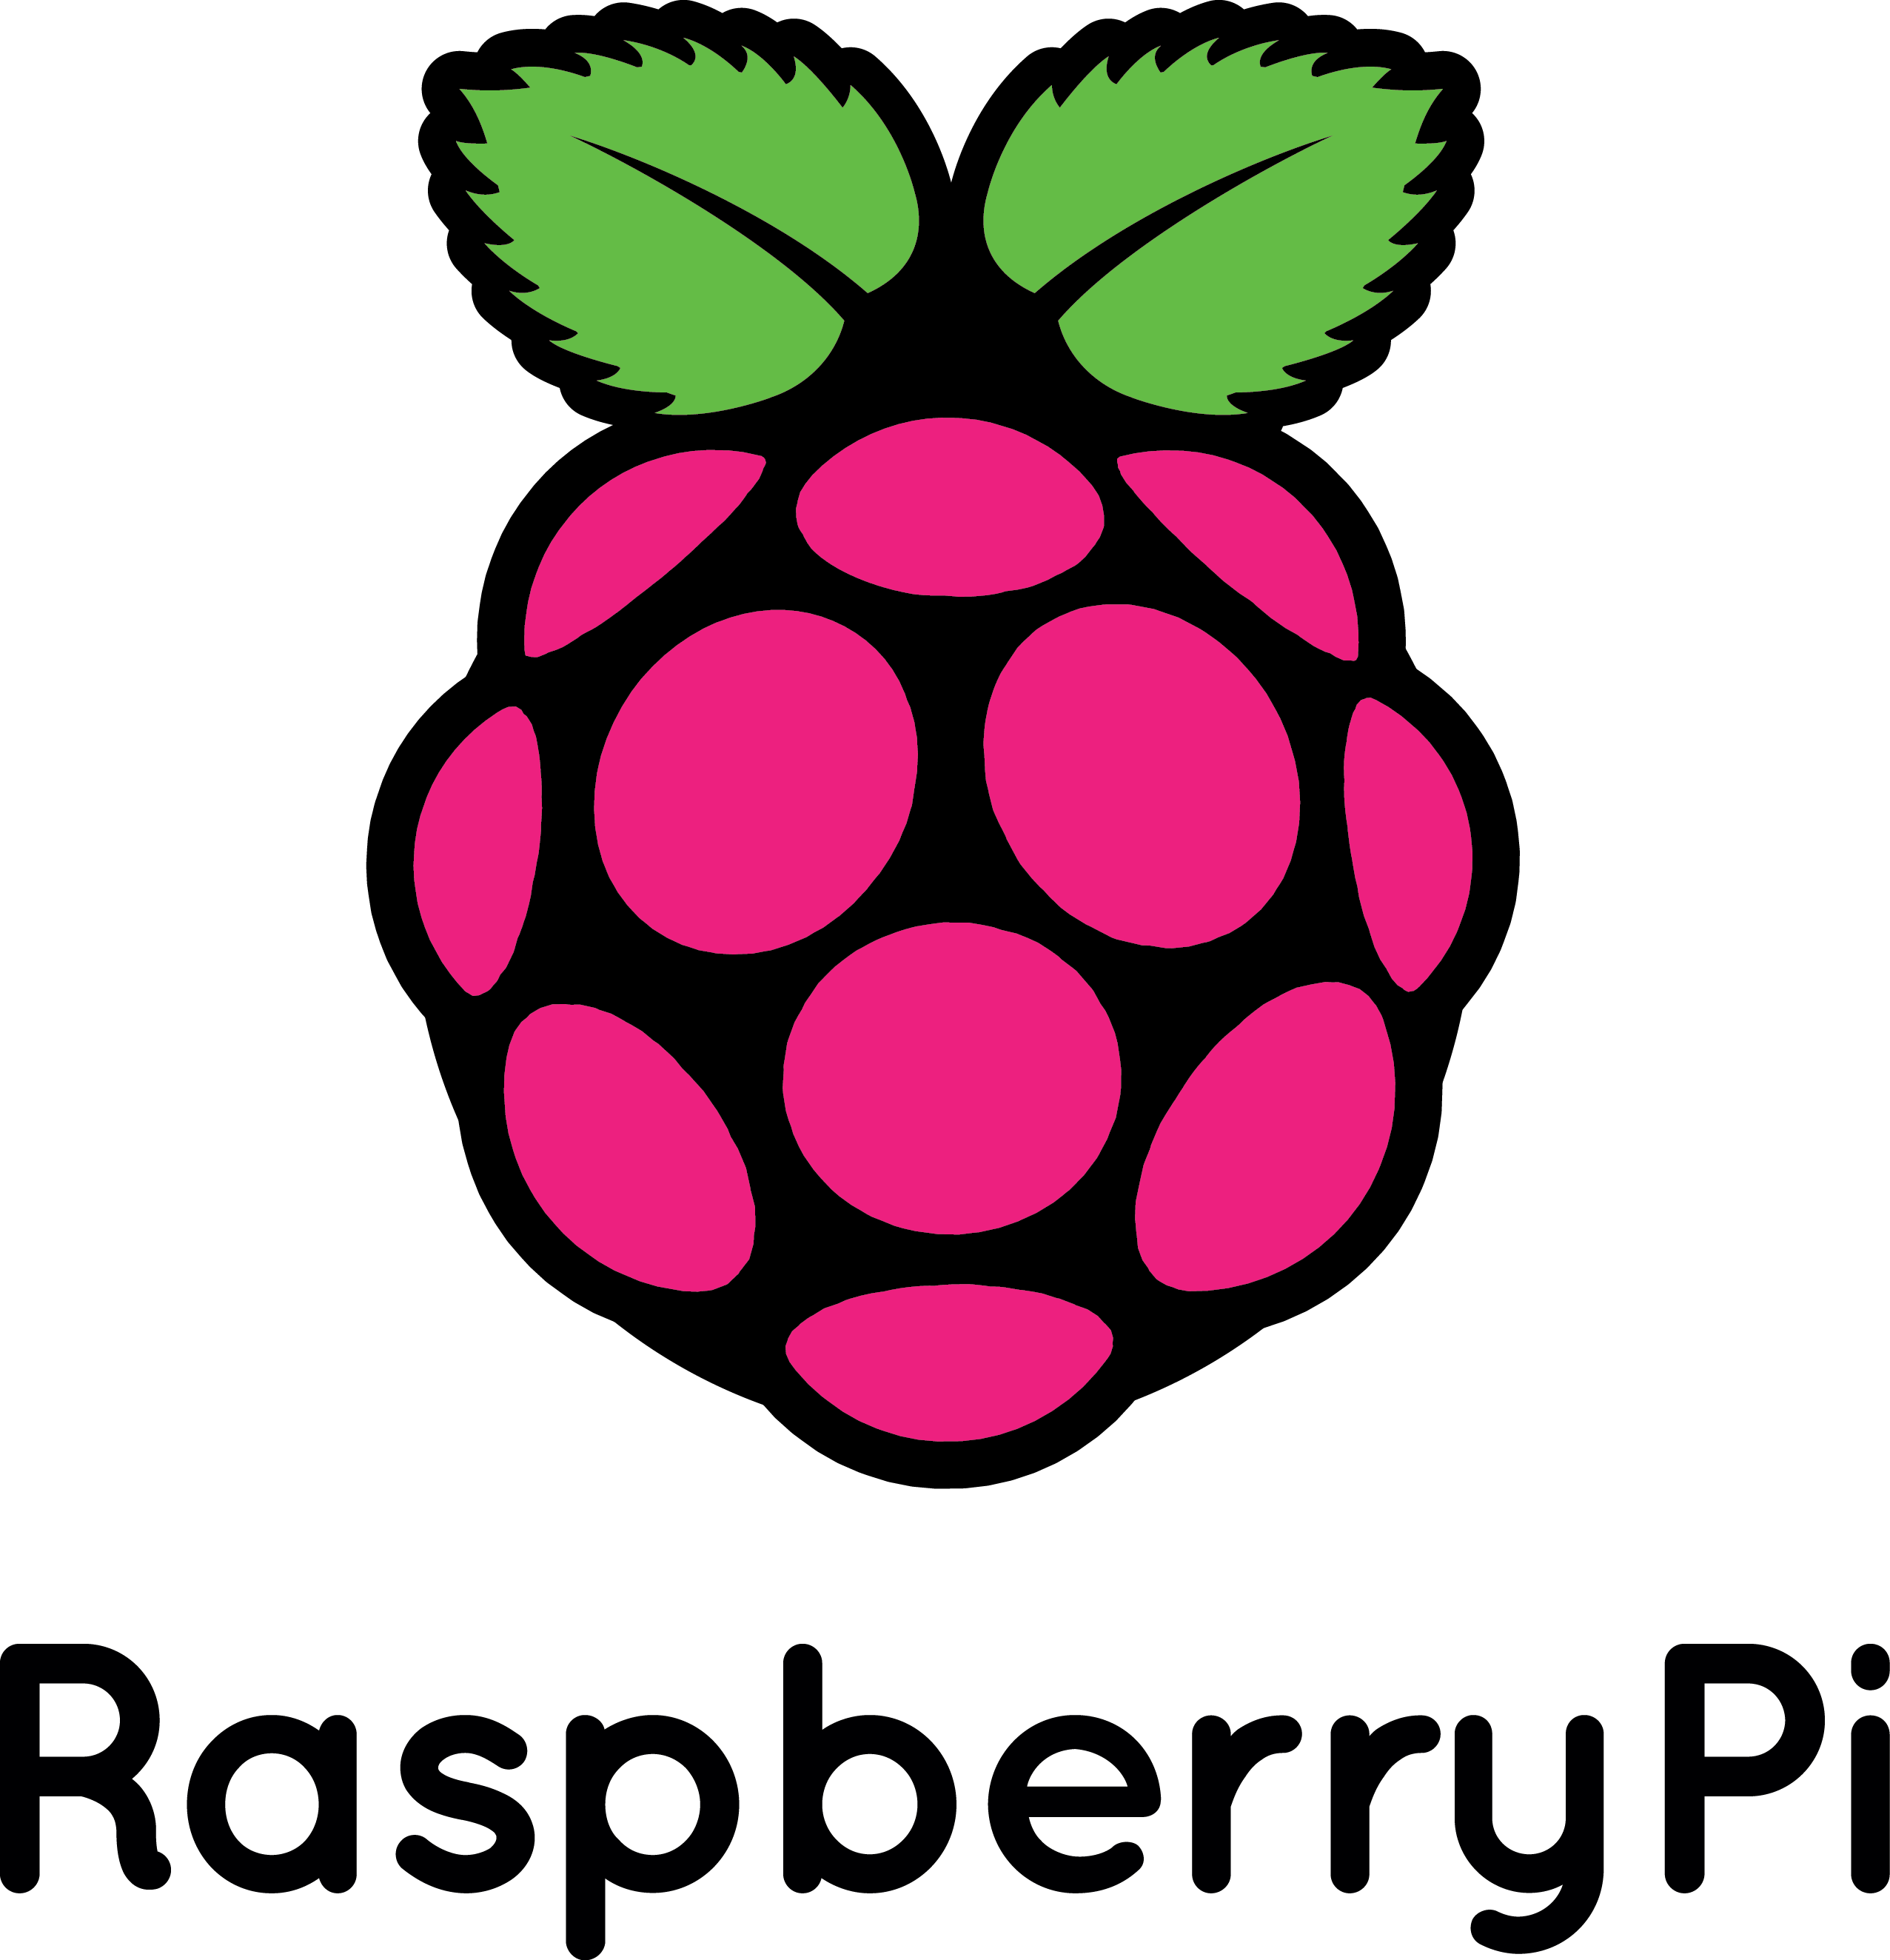 RaspberryPi tiny-computer running Linux and free software Logo